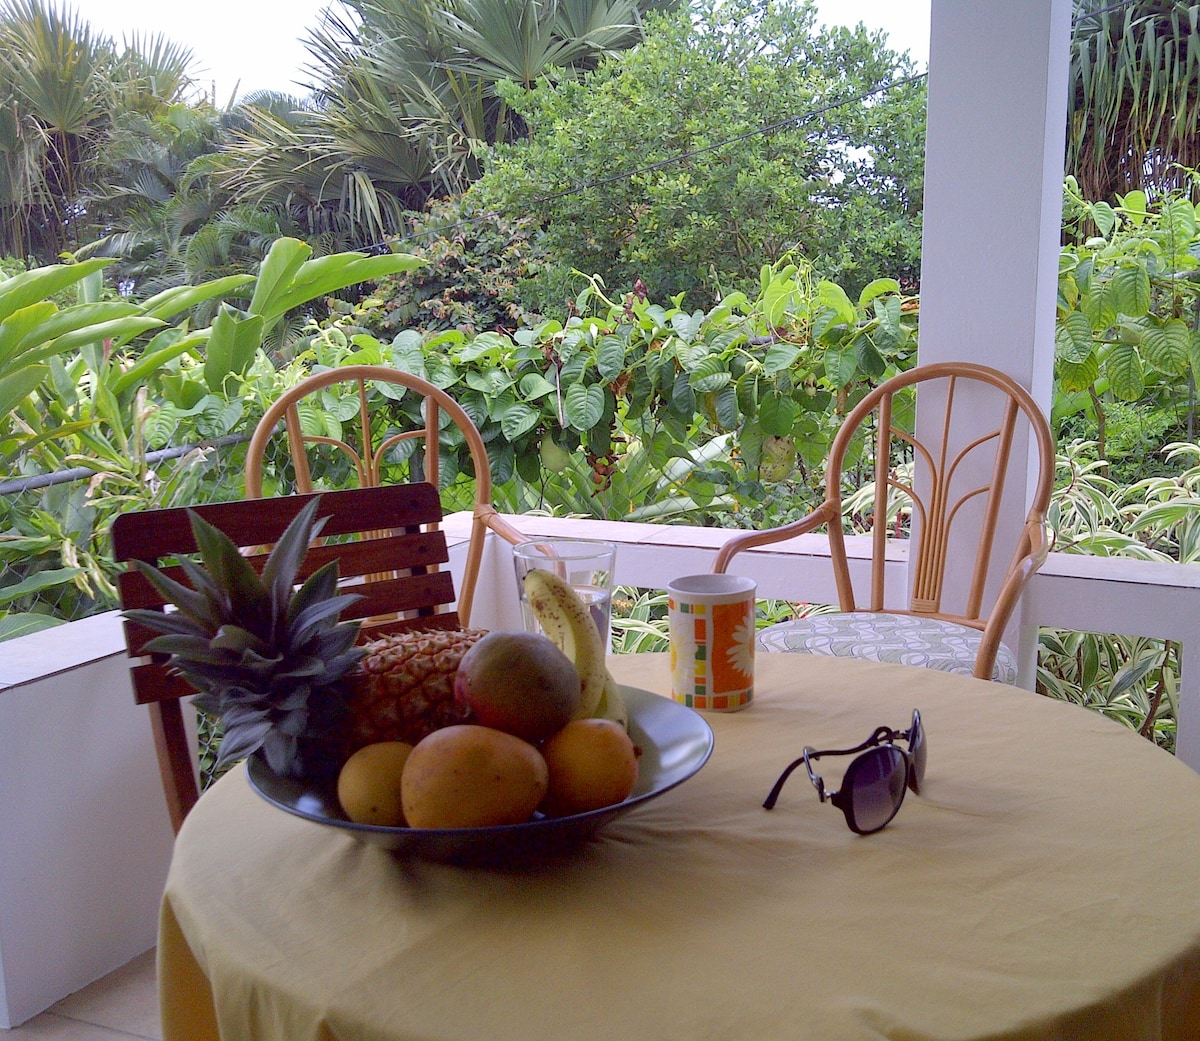 Veranda with view of Smithy's Garden Great for relaxing after a day at the beach and for enjoying tropical fruit and rum punches at sunset or keeping track of the hummingbirds who frequent the veranda.